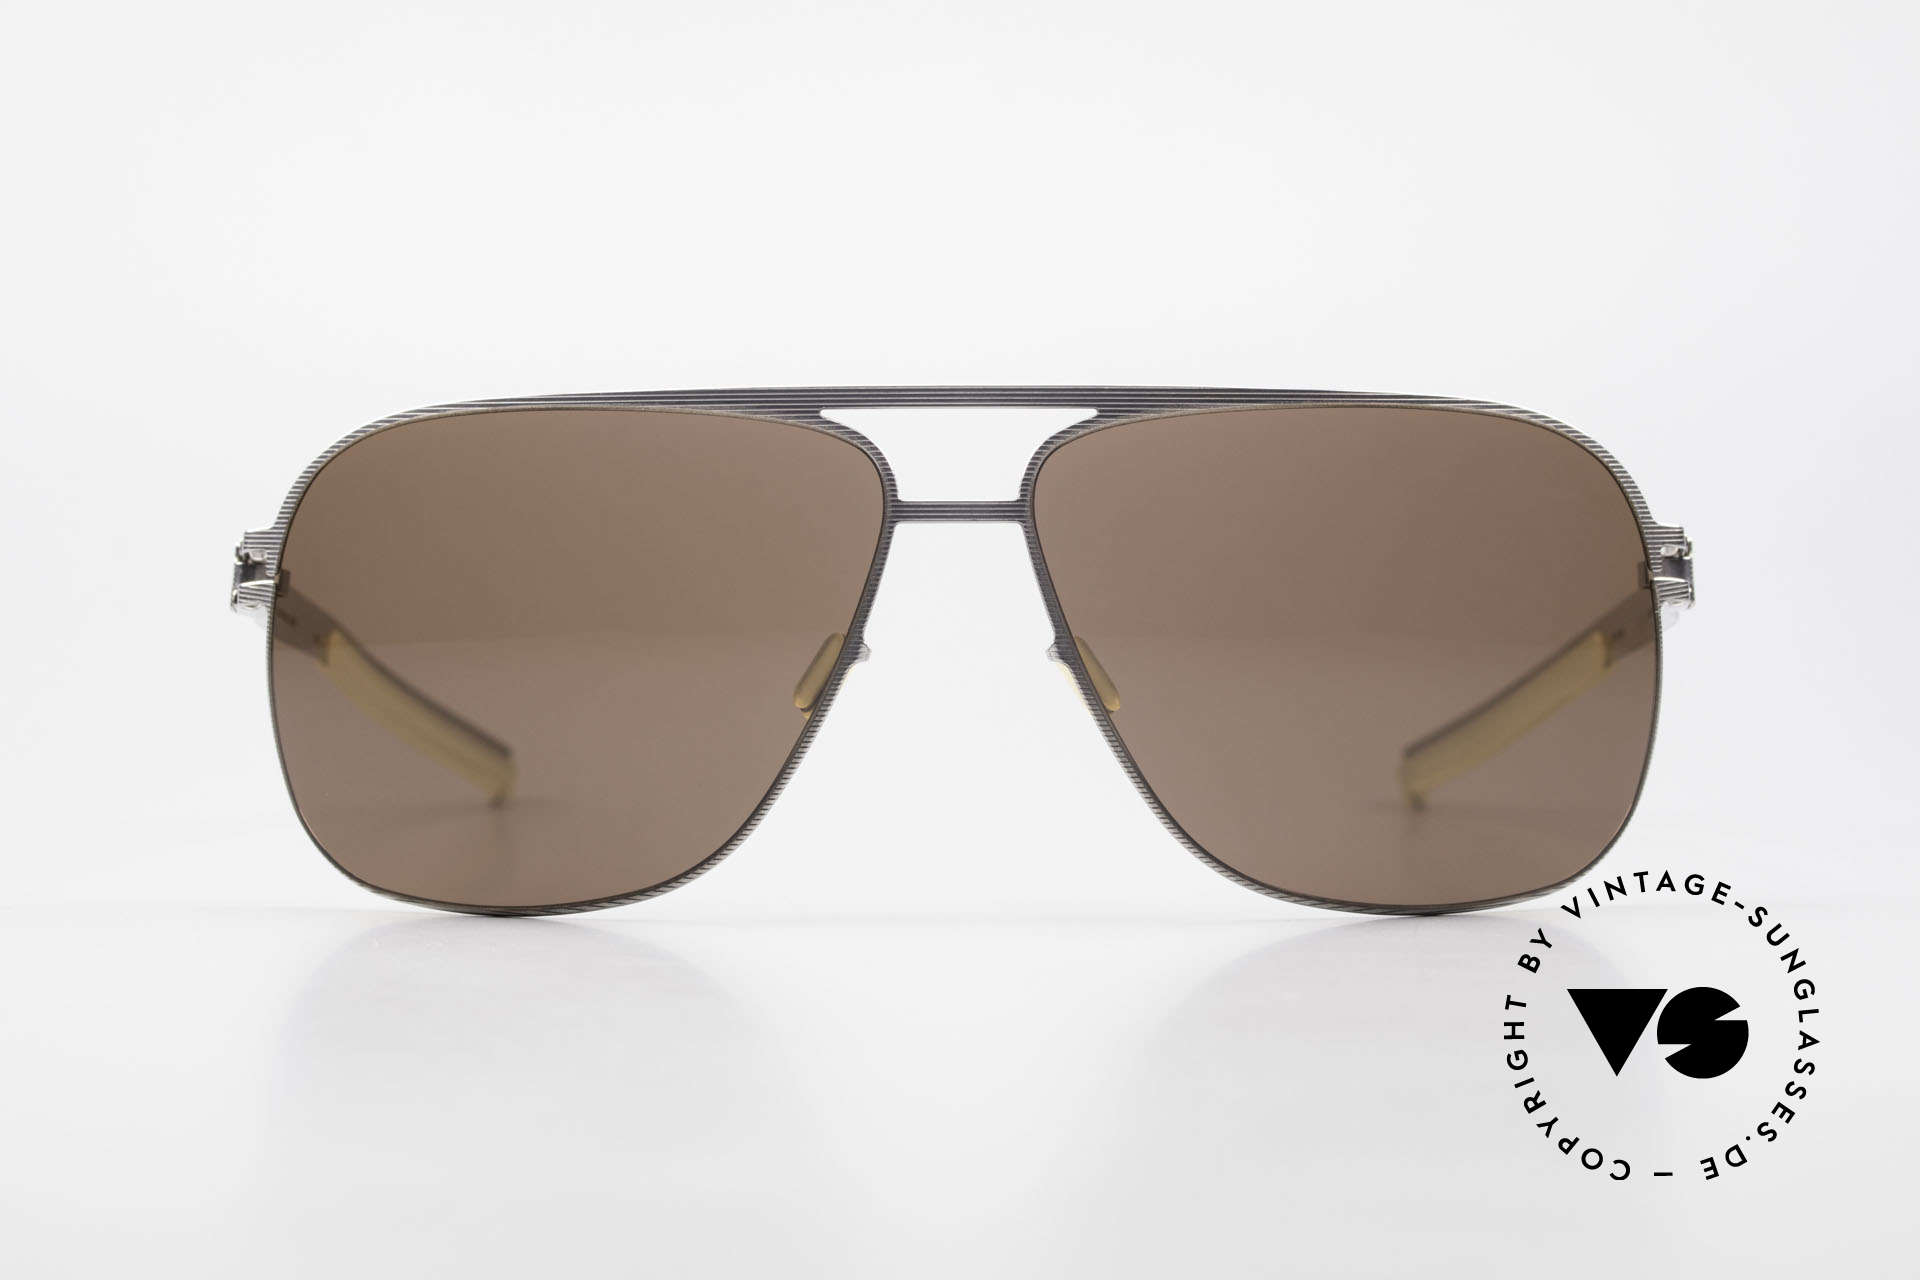 Mykita Luke Rare Designer Shades 2008's, MYKITA: the youngest brand in our vintage collection, Made for Men